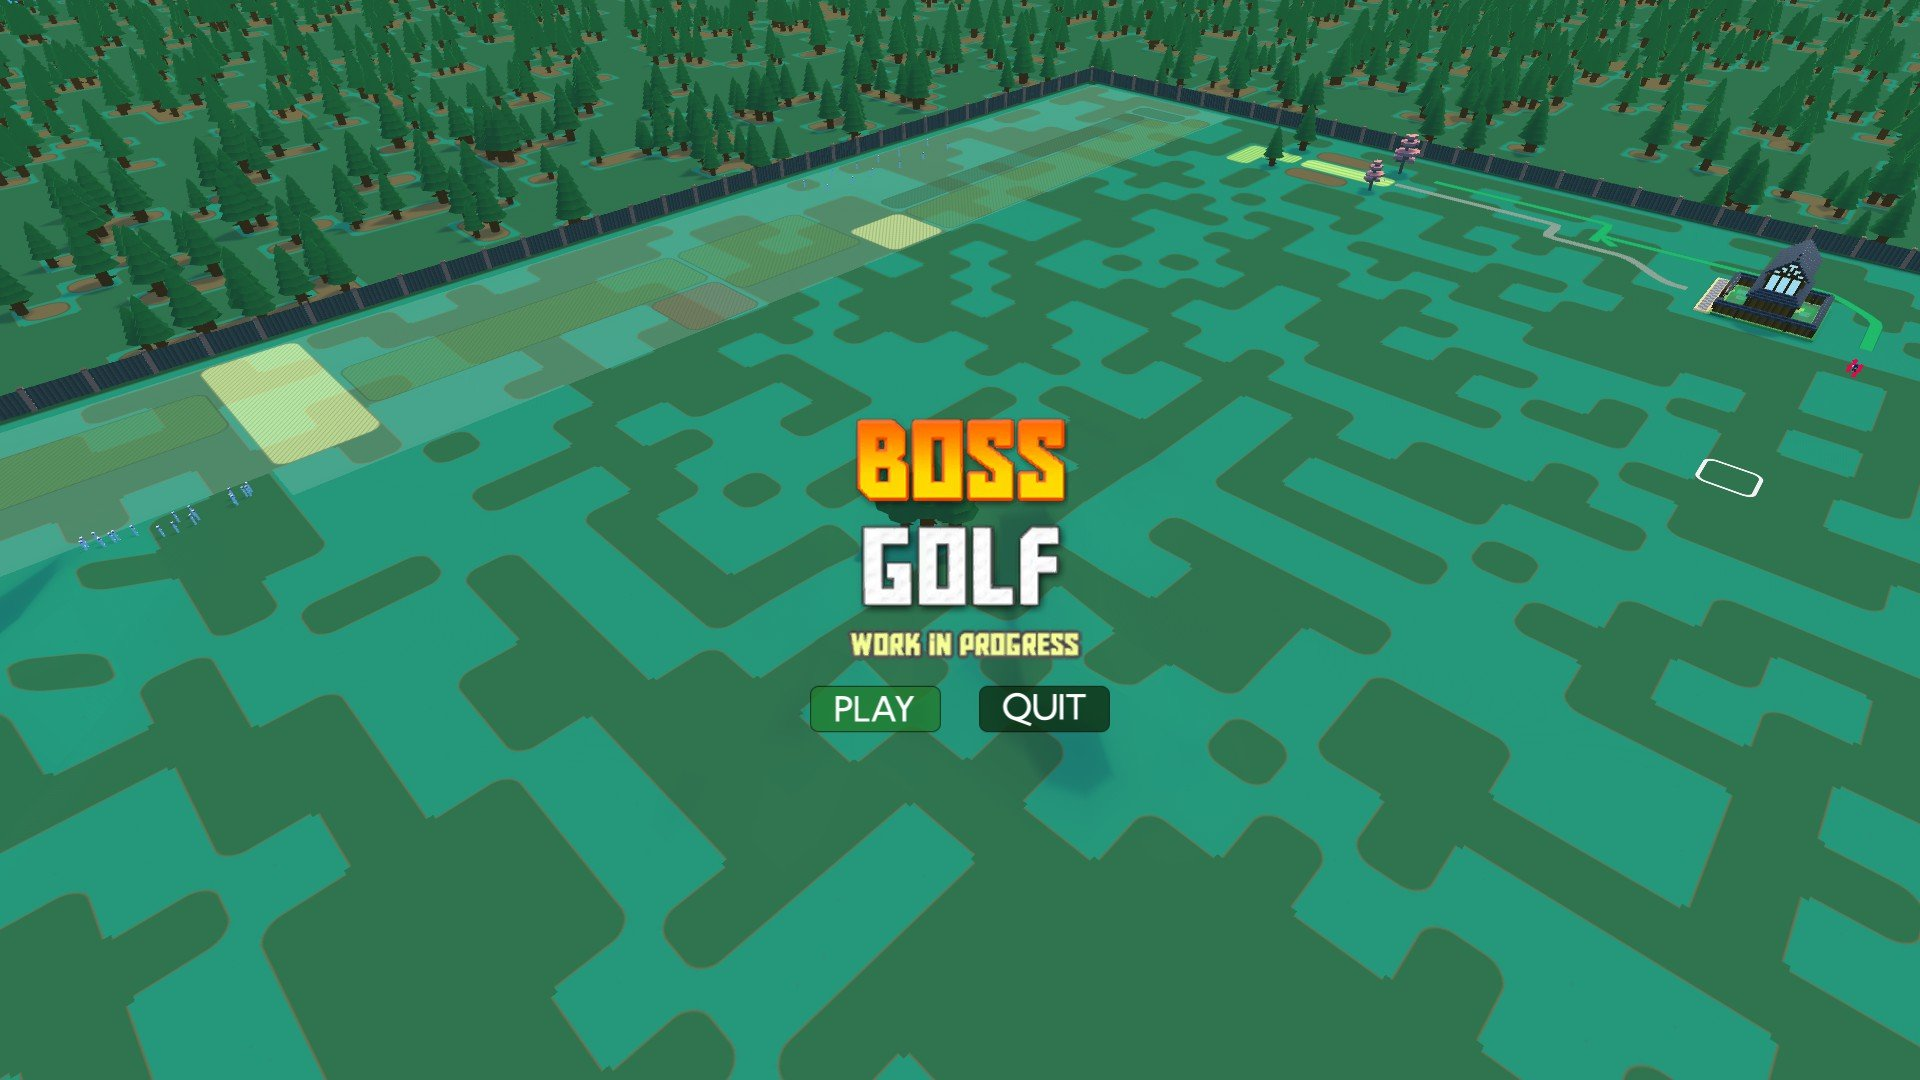 Boss Golf has all the charm of the '90s 'Tycoon' games screenshot